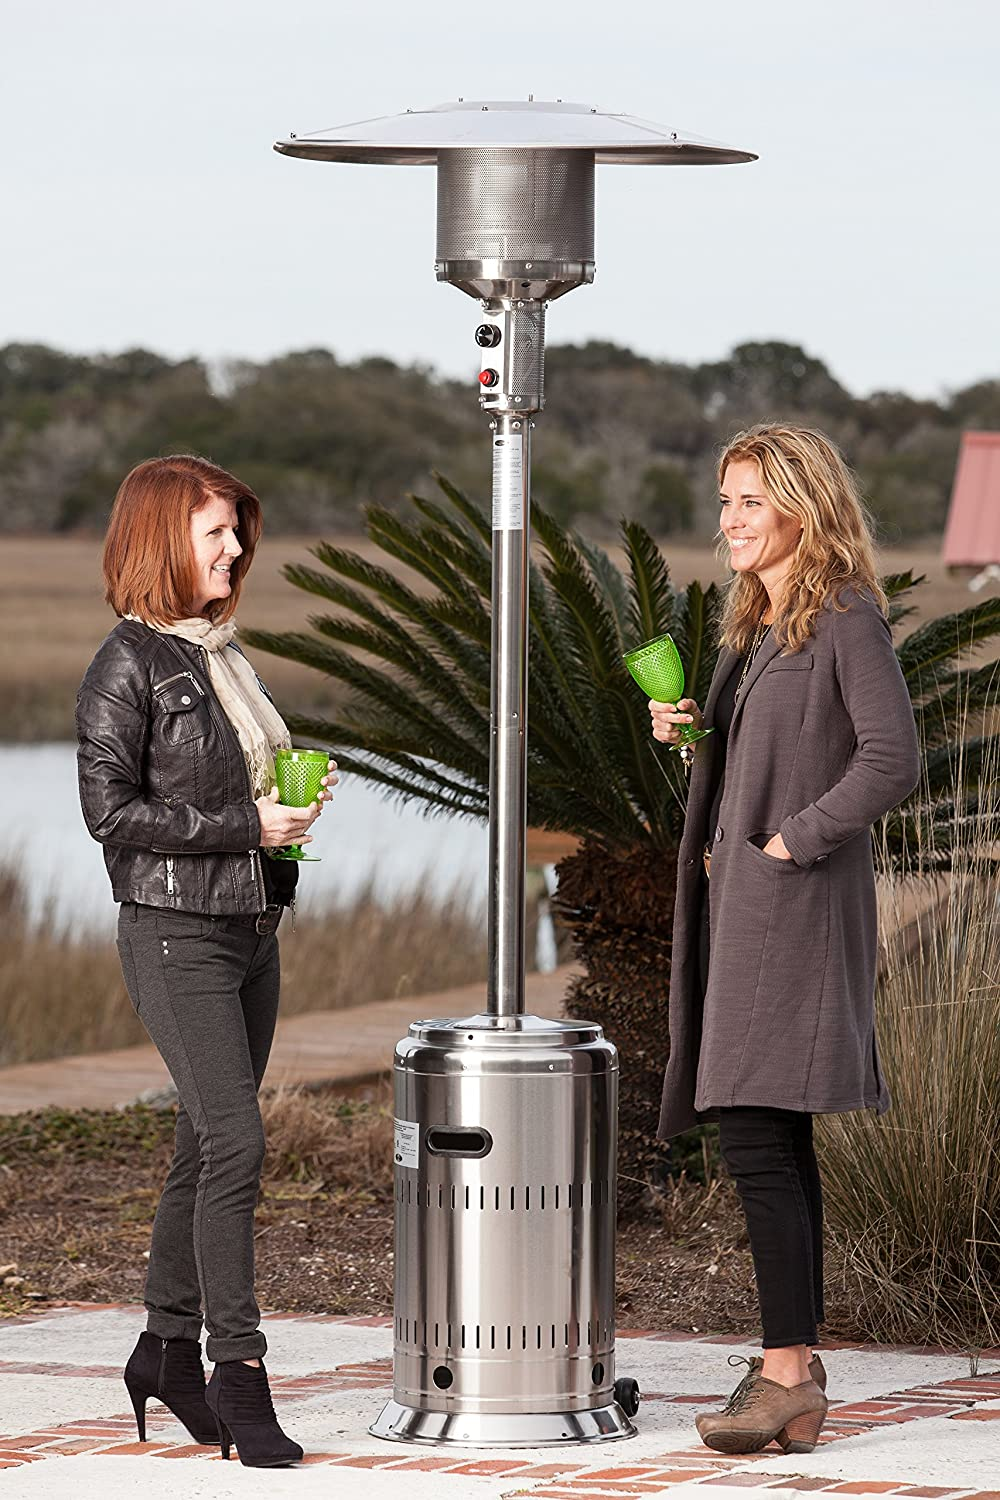 Amazon.com : Fire Sense Commercial Patio Heater, Unpainted Stainless Steel  : Portable Outdoor Heating : Garden U0026 Outdoor